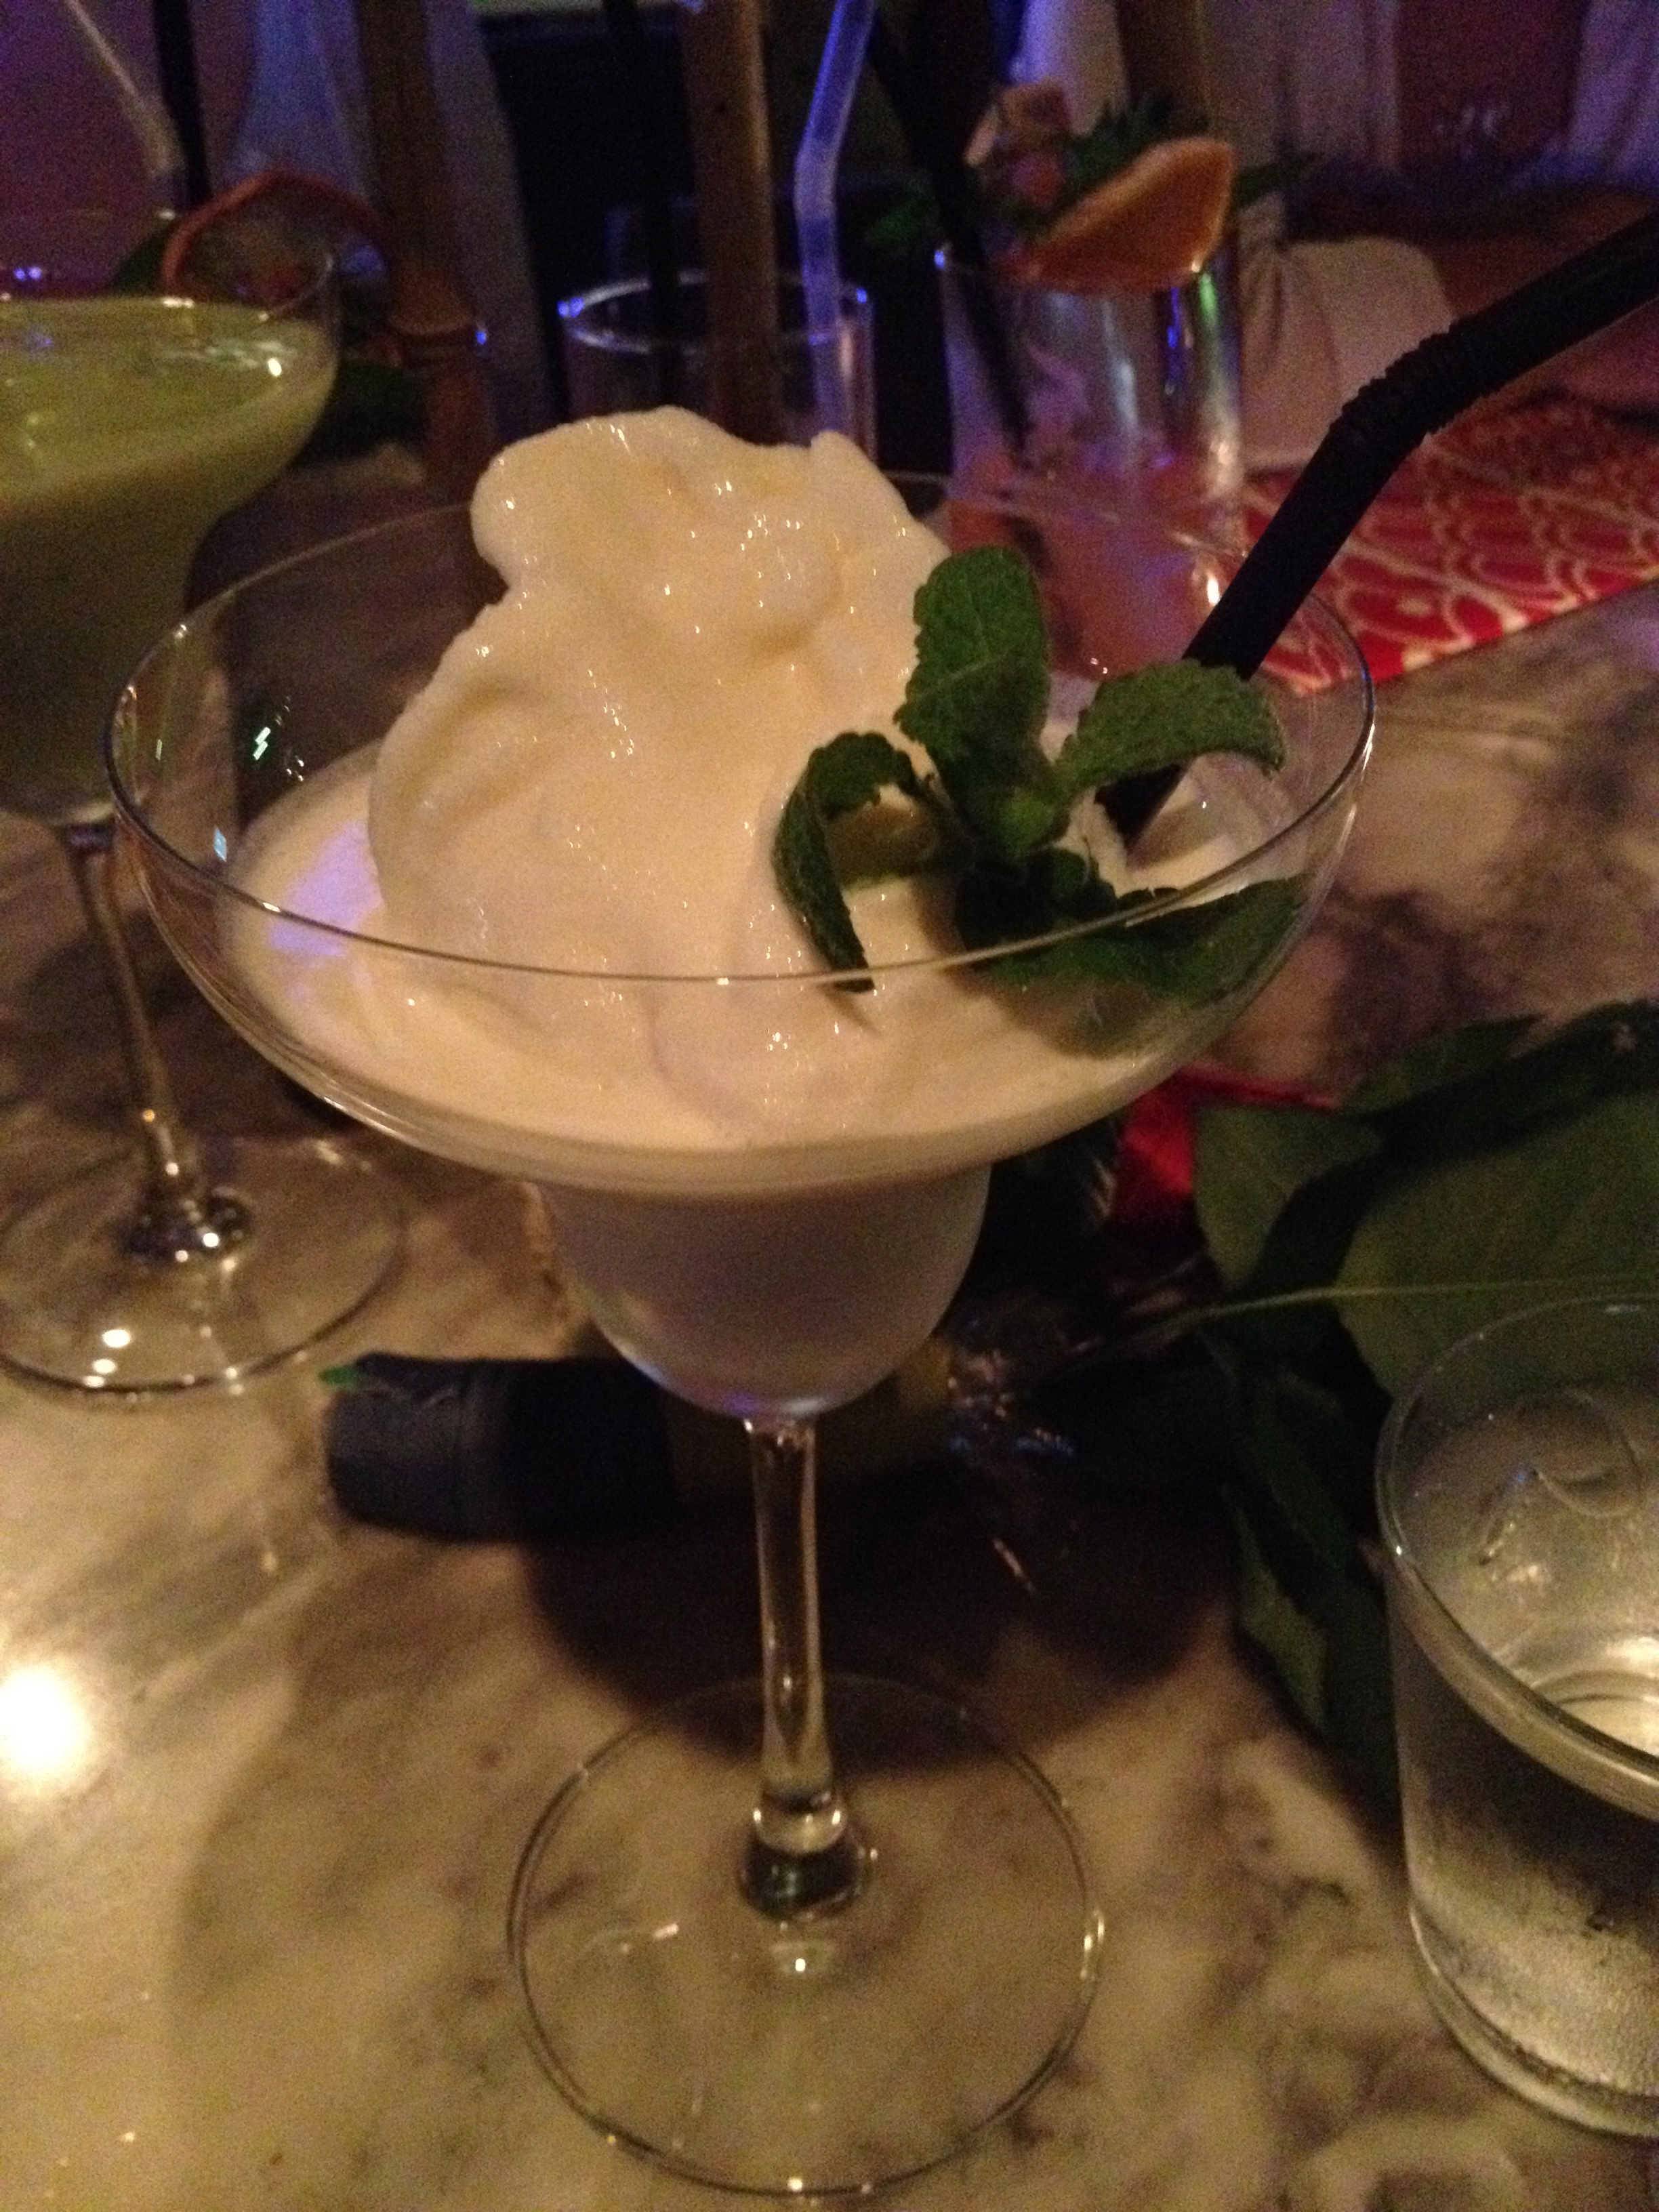 Key Lime Margarita - creamy, tart and delicious! The only complaint is that it's too small! They should put this into a giant cup!